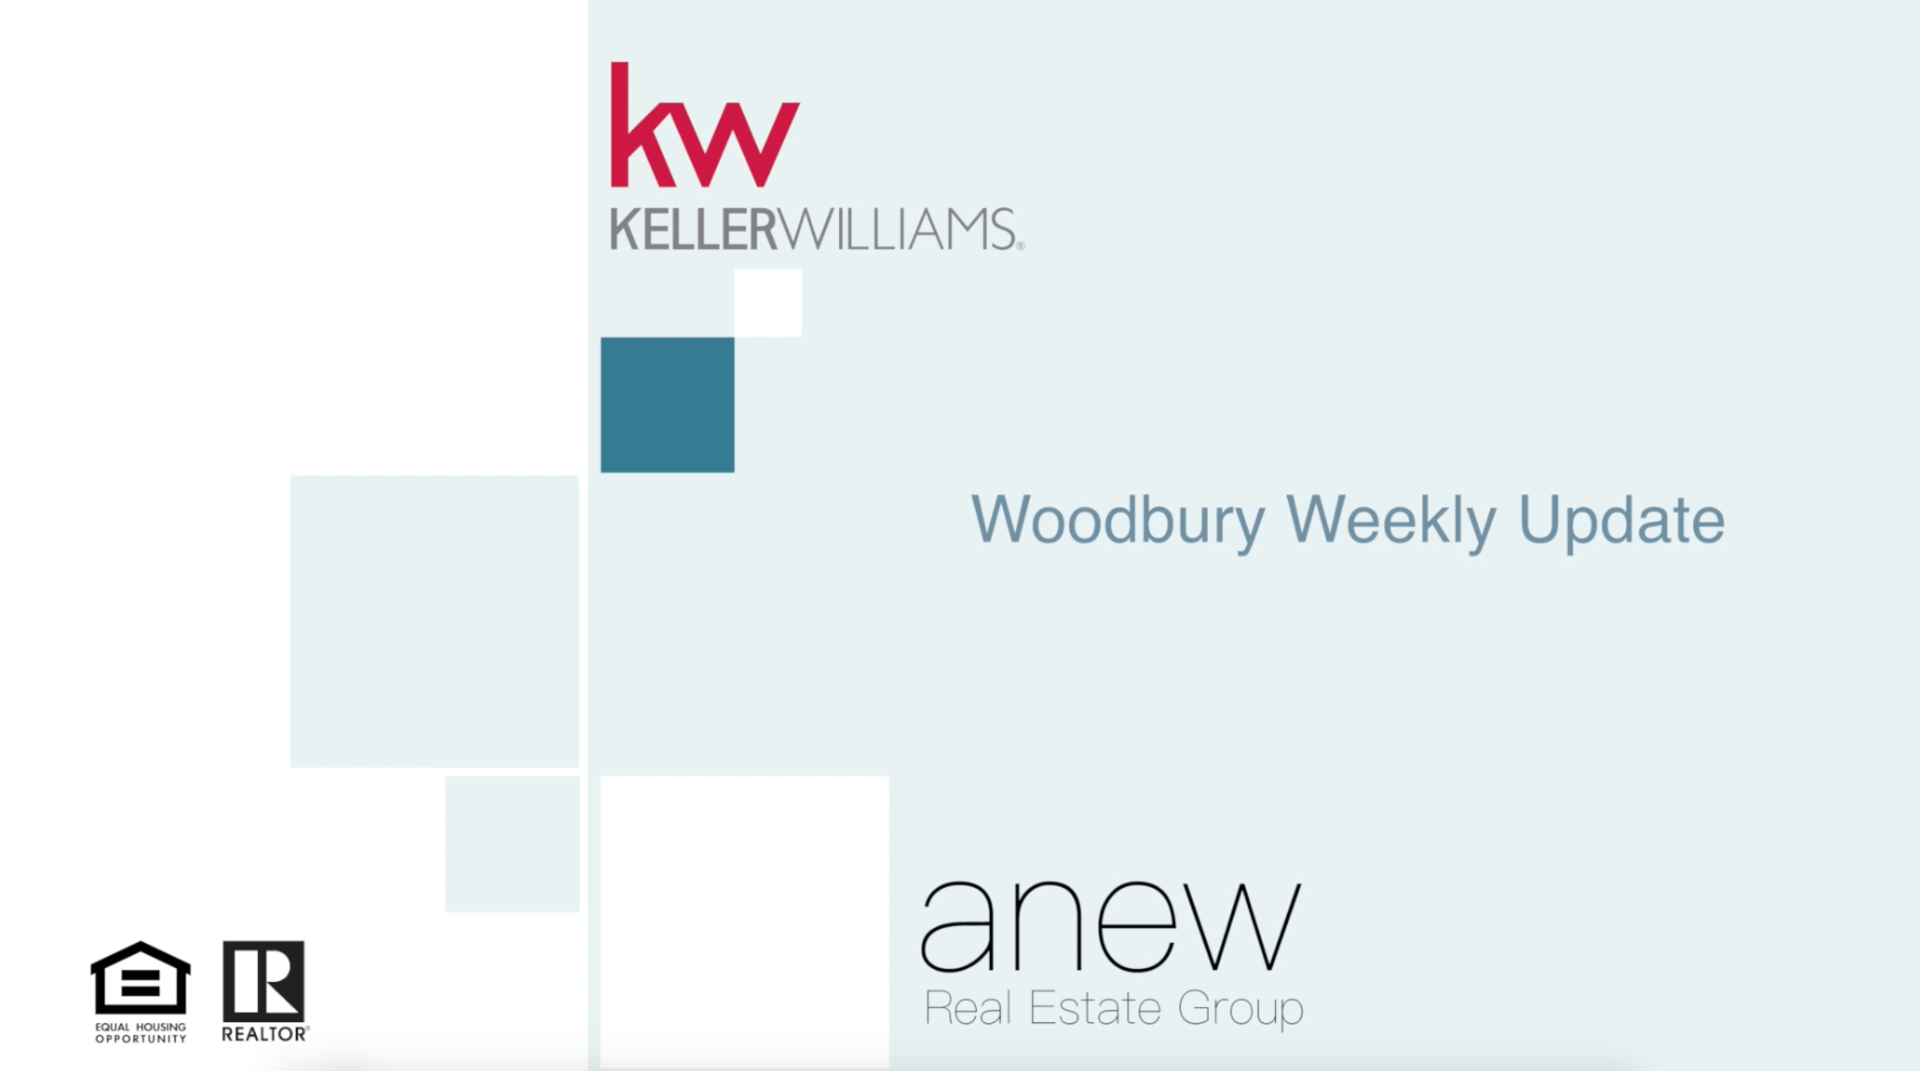 Woodbury Weekly Update for May 29th 2018